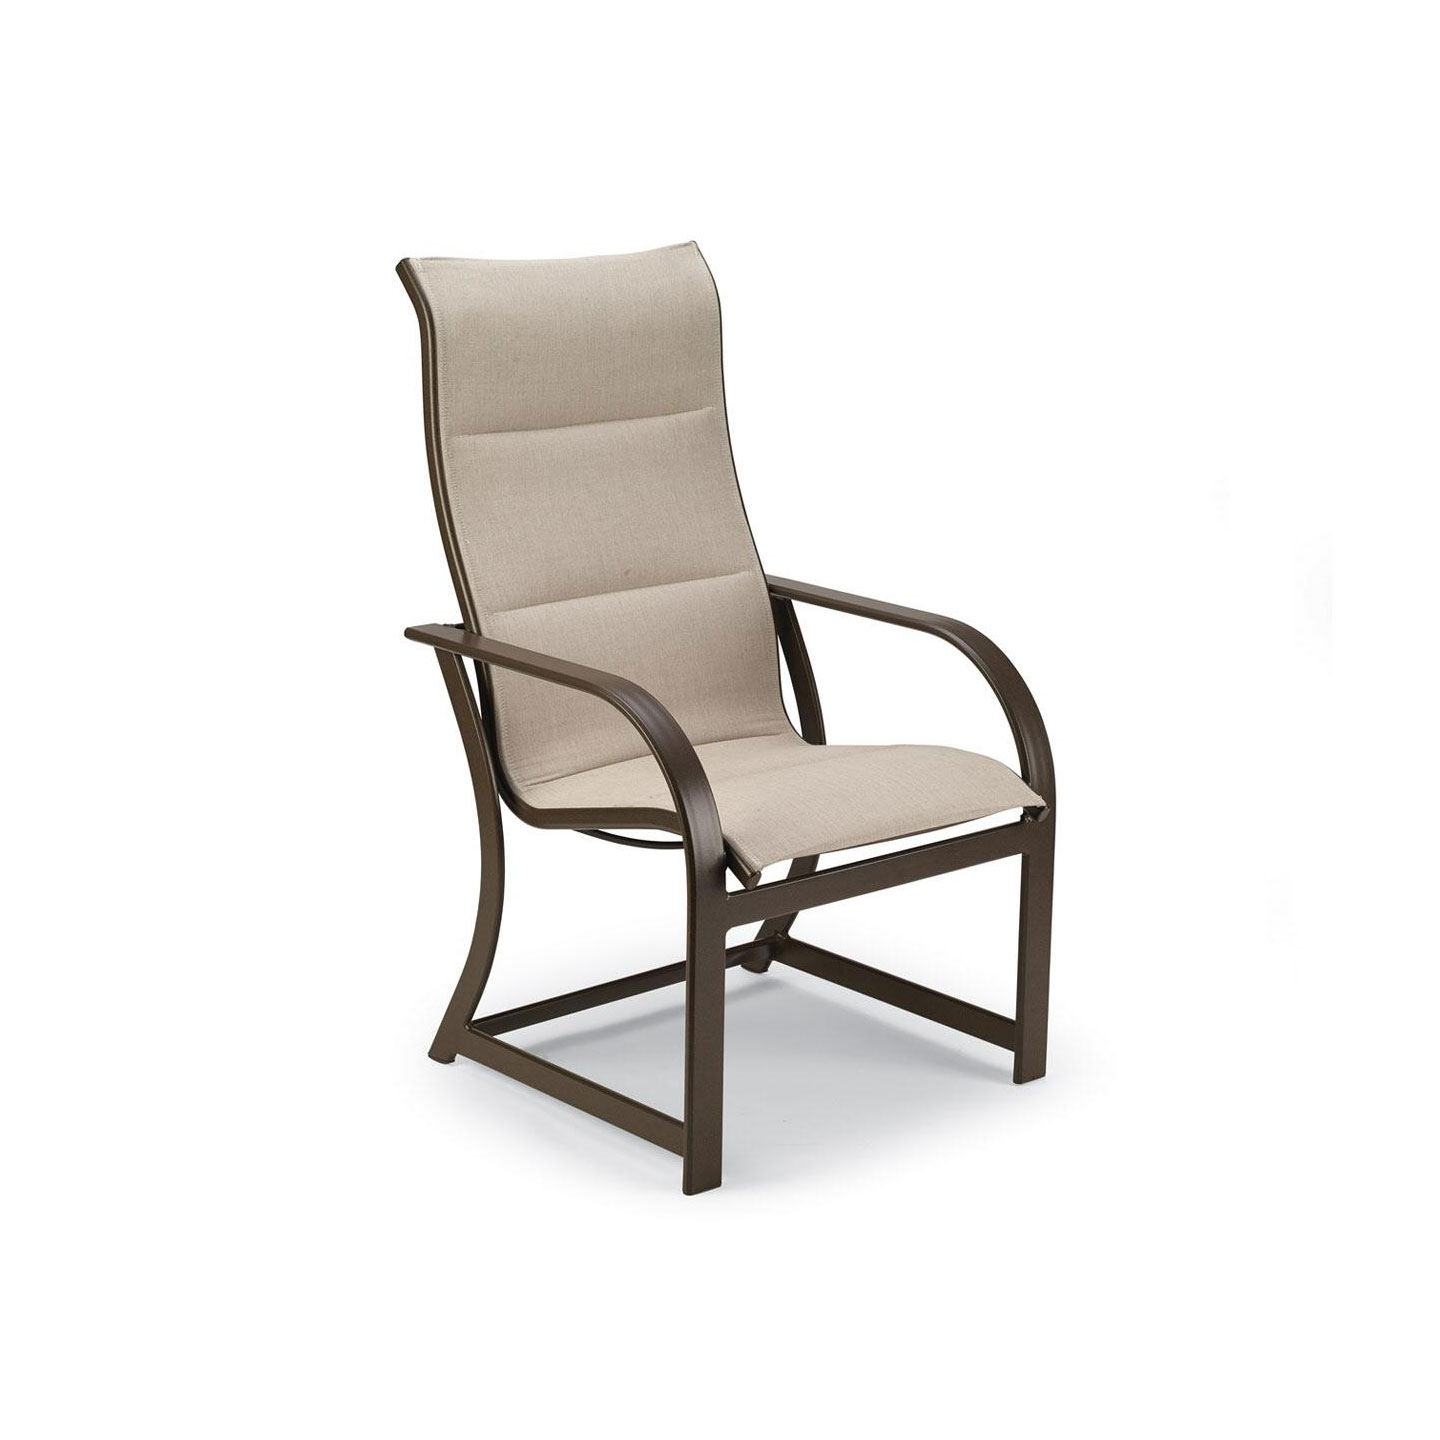 Winston key west padded sling dining chair outdoor for Outdoor furniture dallas